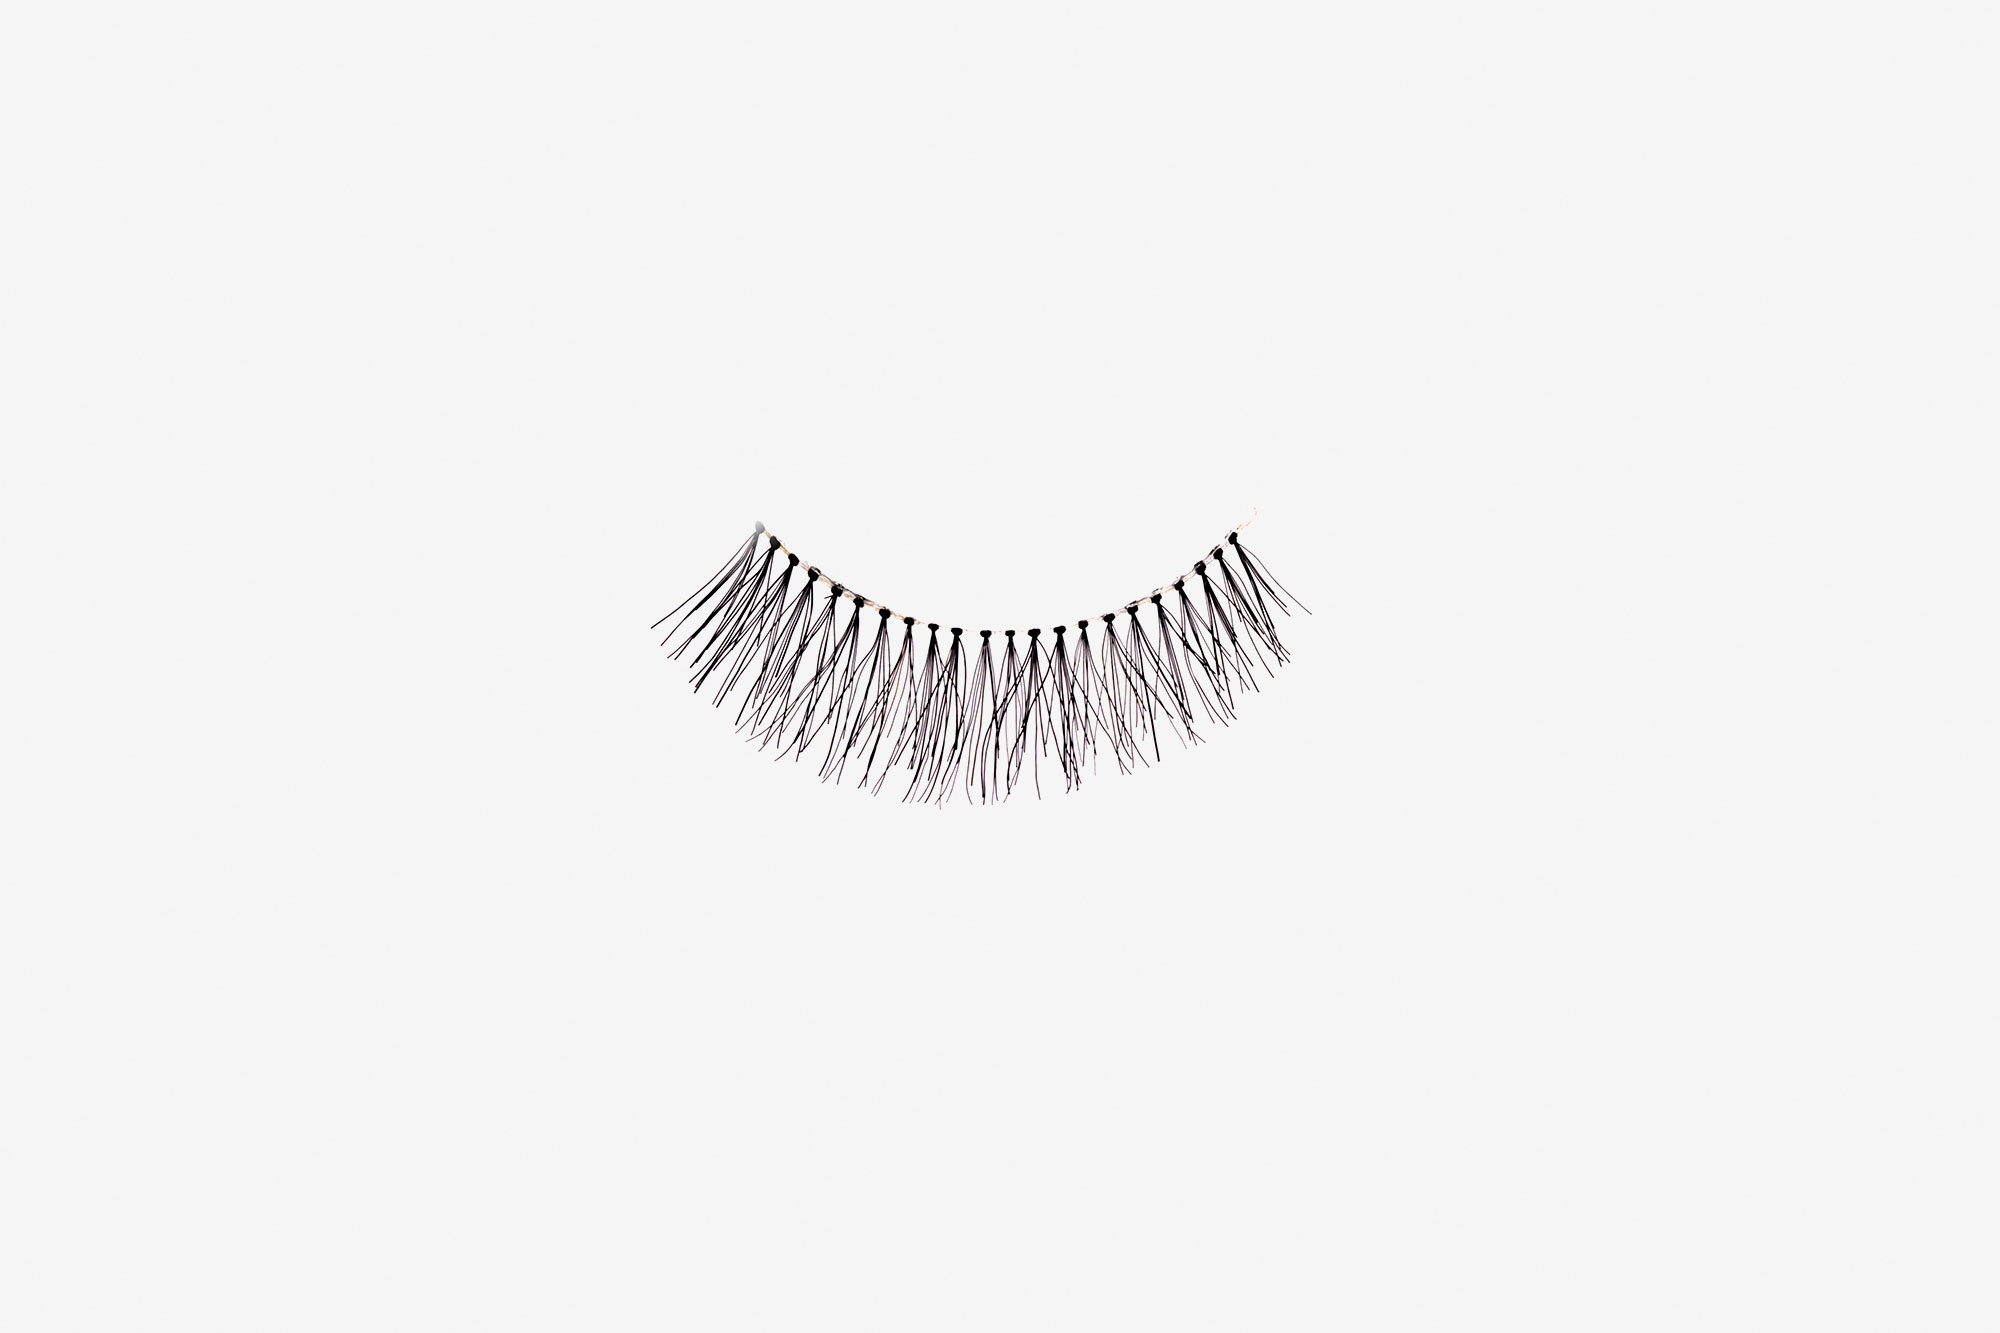 Emily False Eyelashes, single false lash on grey background